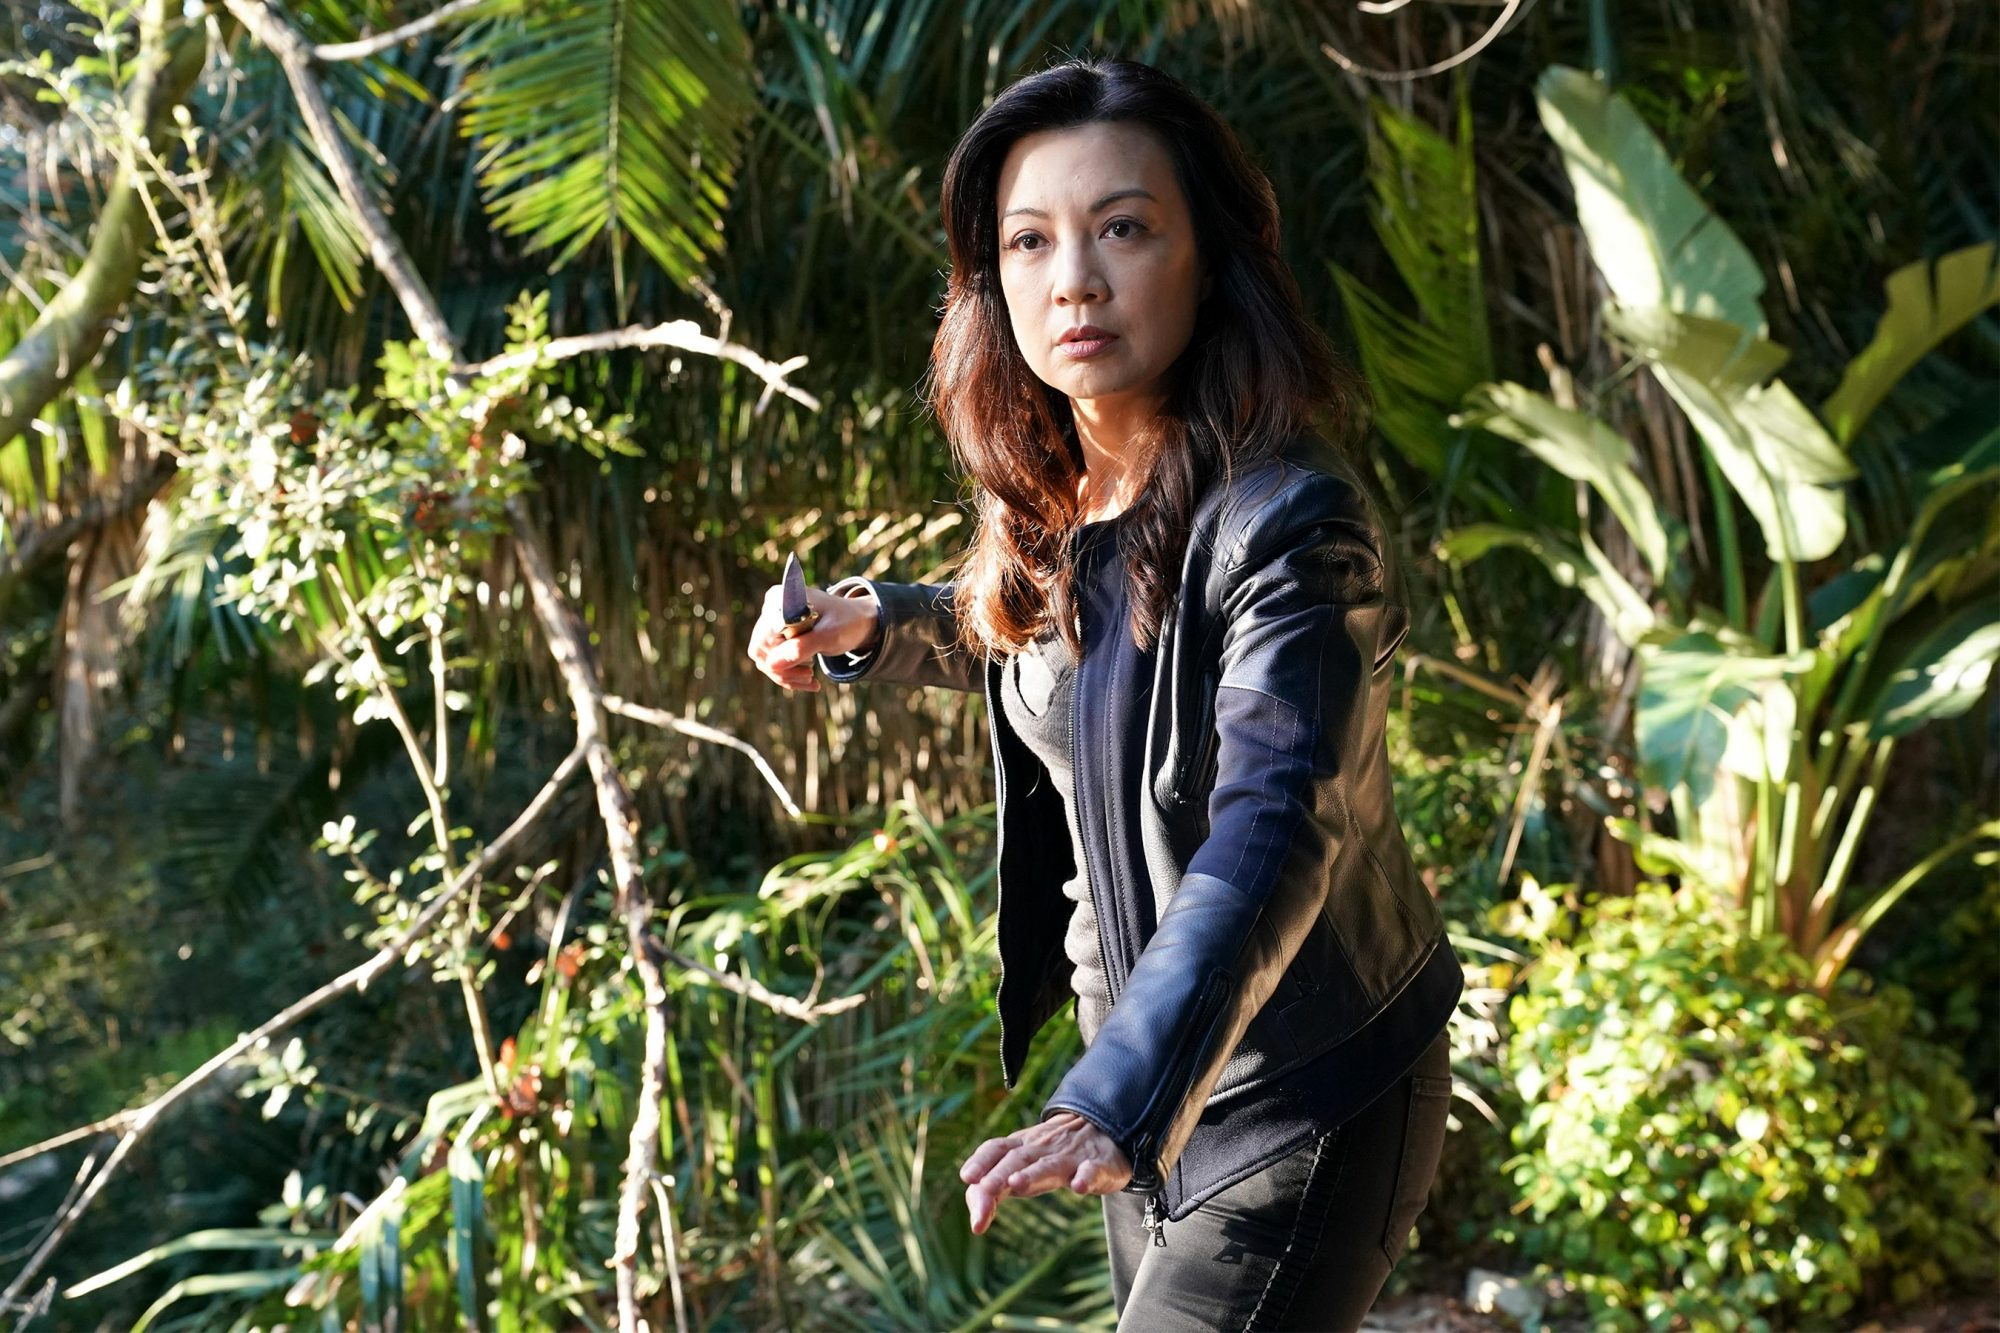 "MARVEL'S AGENTS OF S.H.I.E.L.D. - ""The Sign/New Life"" - With time running short, the team will have to go to hell and back to stop the end of everything. Who will survive? Find out on the blockbuster two-hour season finale of ""Marvel's Agents of S.H.I.E.L.D."" airing FRIDAY, AUG. 2 (8:00-10:01 p.m. EDT), on ABC. (ABC/Mitch Haaseth) MING-NA WEN"